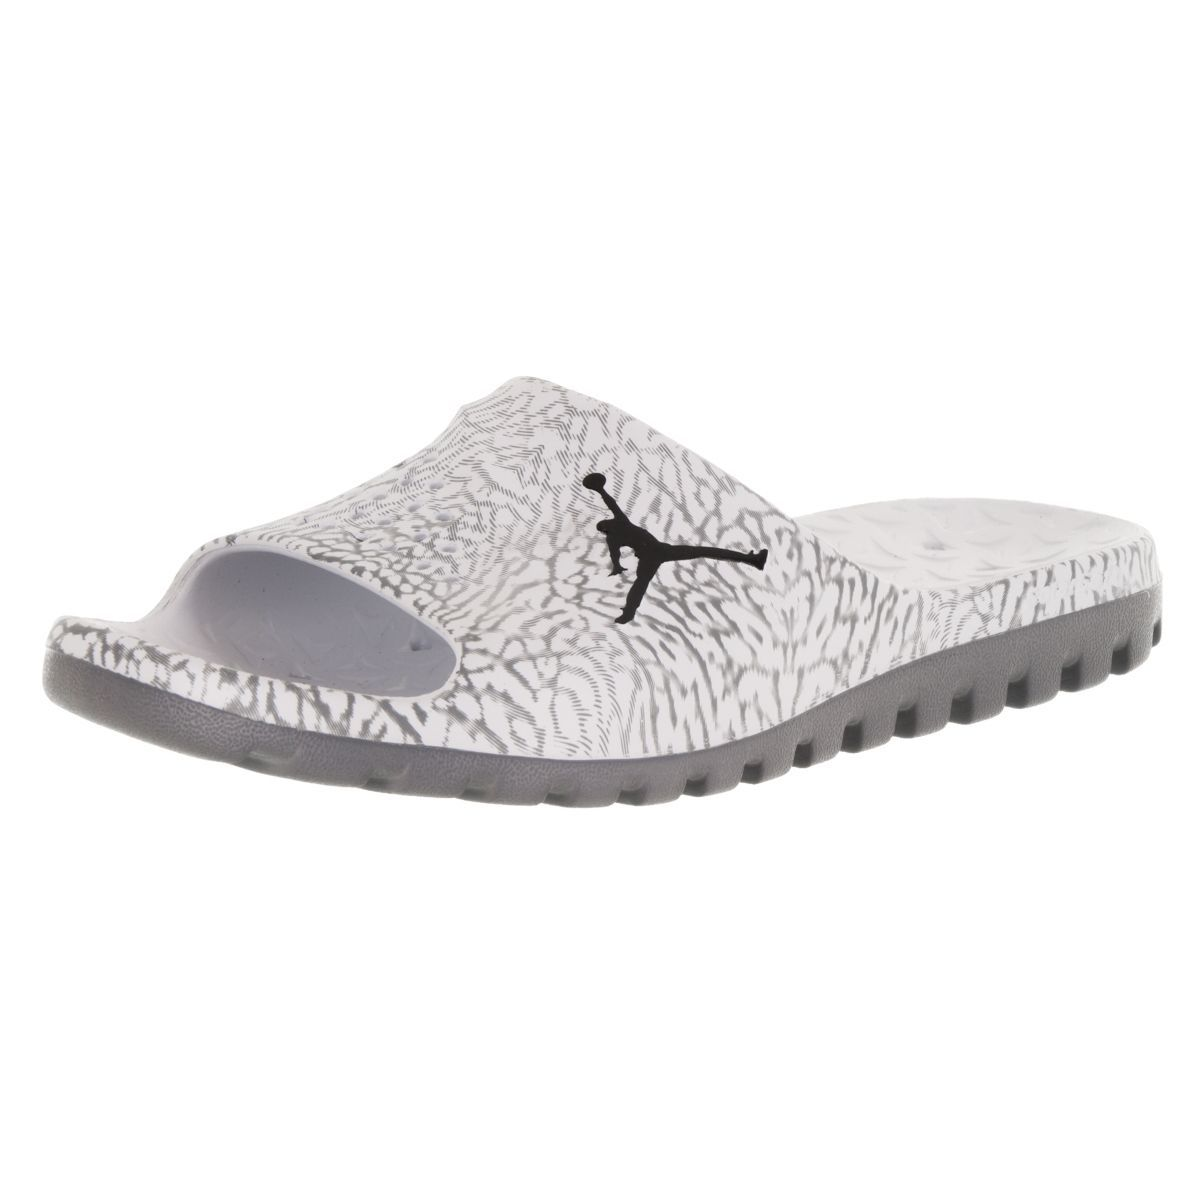 6fdd213ee7e36 Nike Jordan Men s Jordan Super.Fly Team Slide Pure Platinum  Cool Grey  Sandal